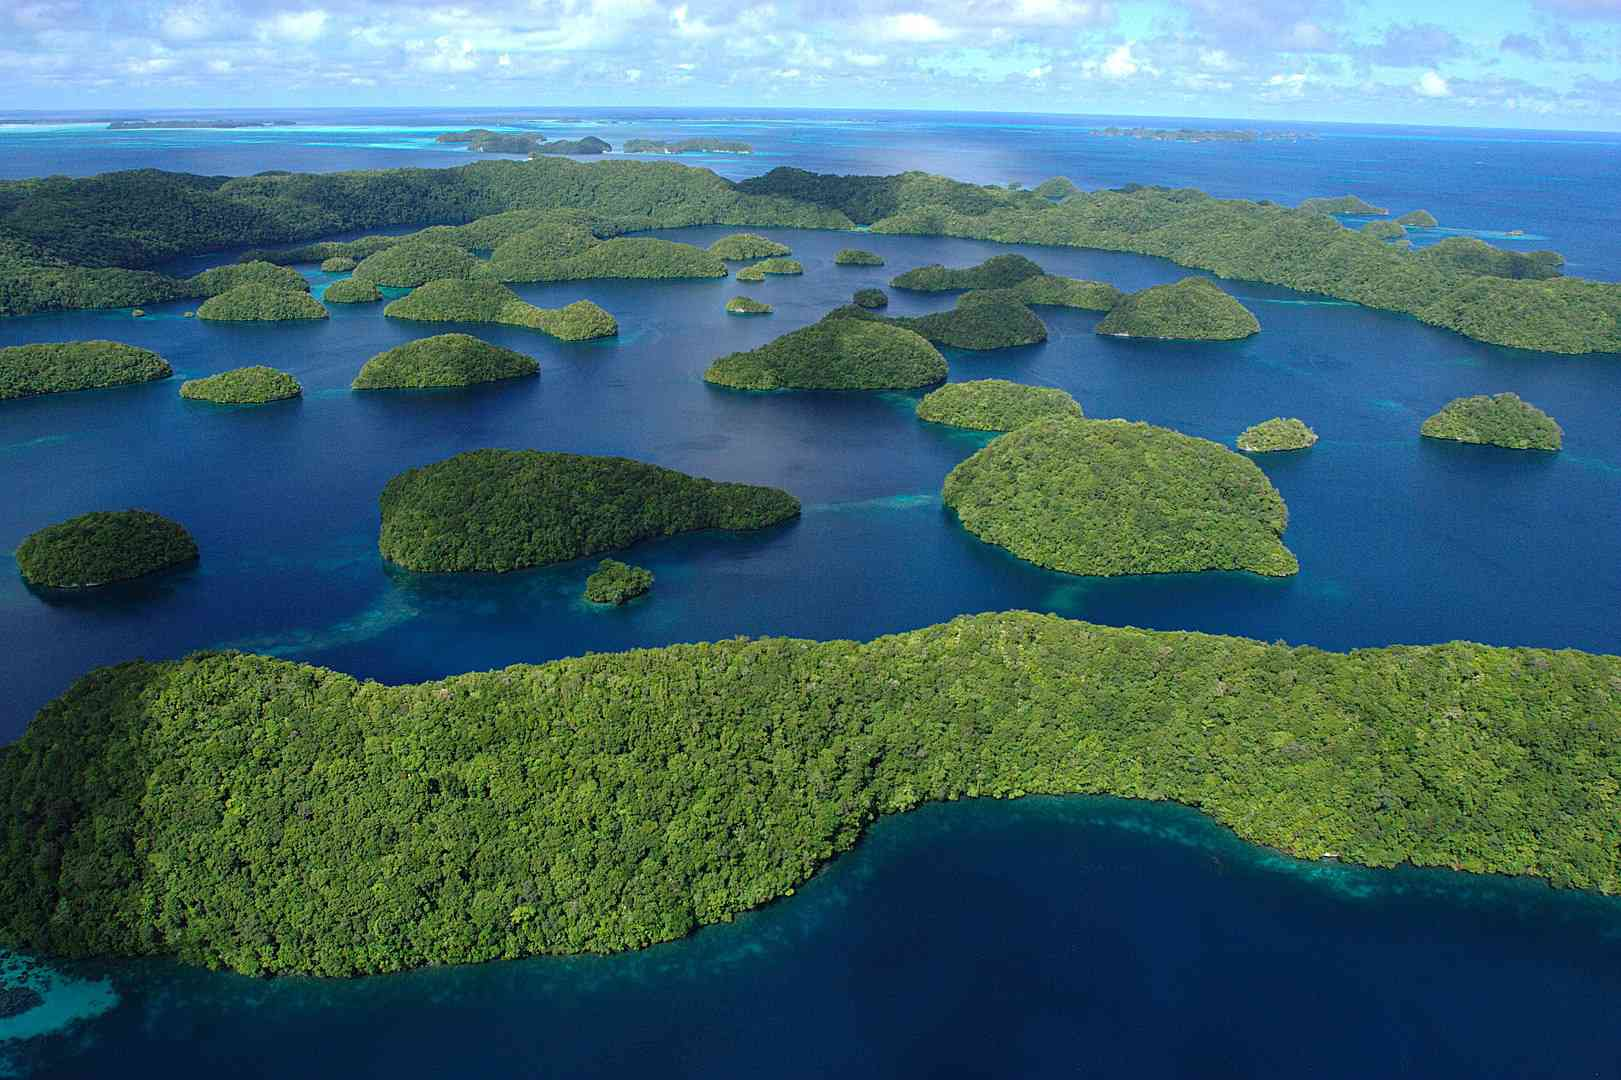 Palau in the Pacific Ocean